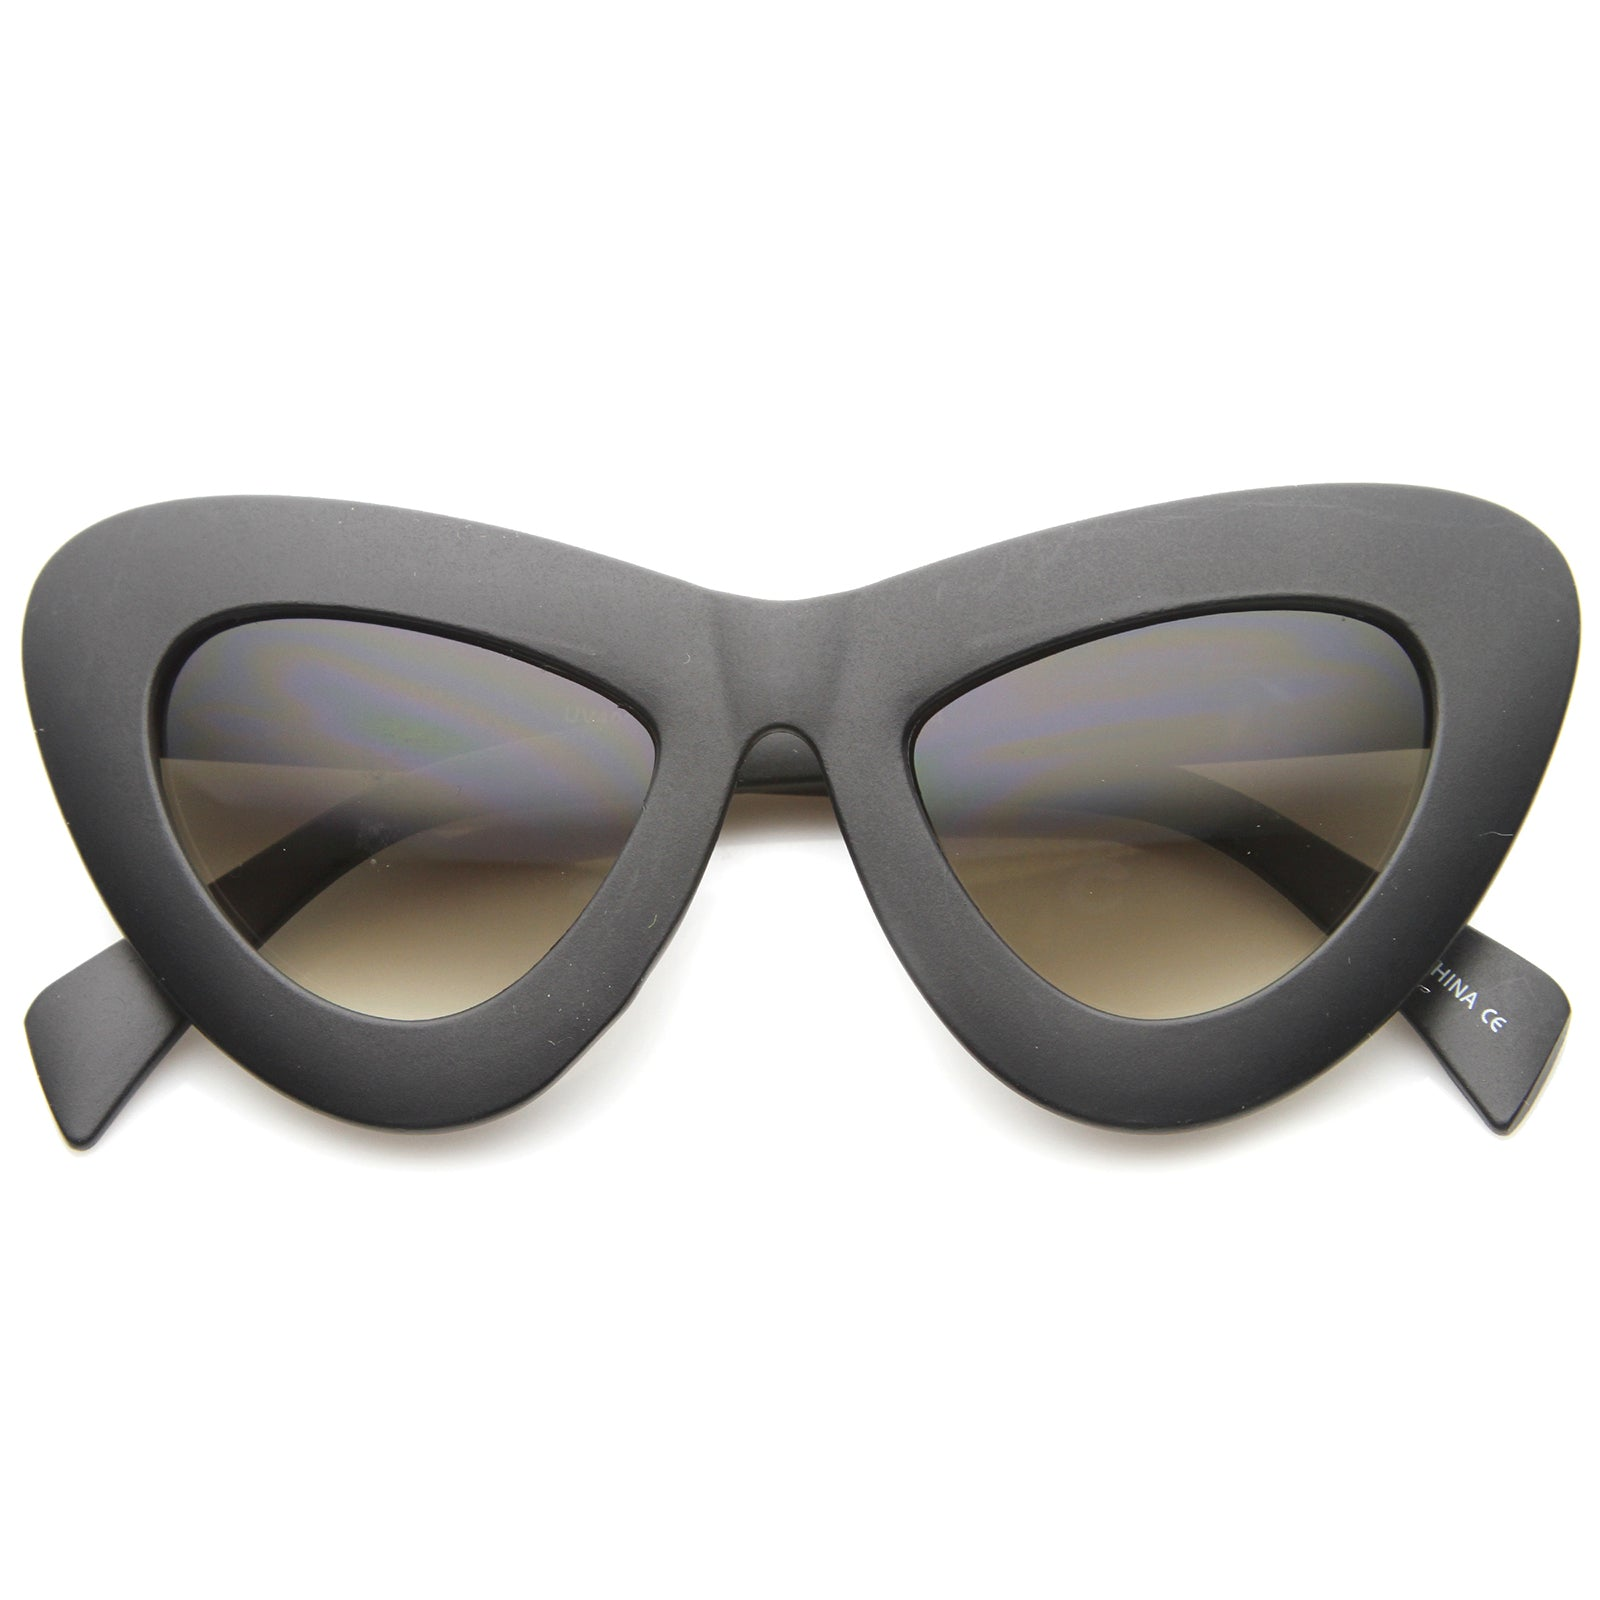 Womens Cat Eye Sunglasses With UV400 Protected Composite Lens - sunglass.la - 13